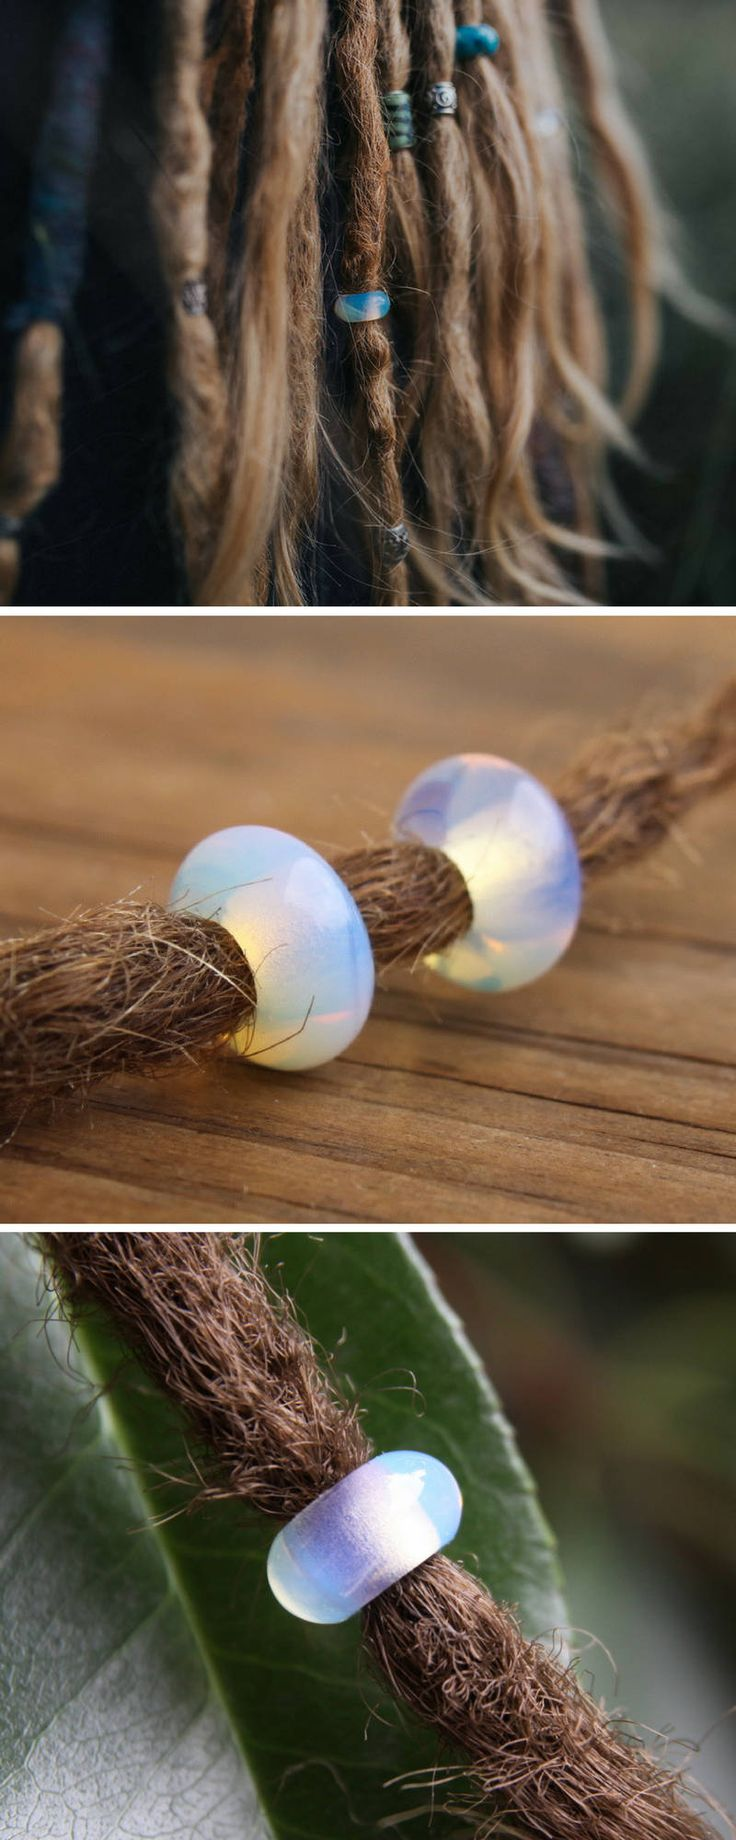 Opalite Dreadlock Beads - Beautiful shining Dread Beads - Gemstone Dreadlock Beads - Small Hole Dread Beads - Stunning Hair Beads - Dreadlock Jewelry - Jewellery - Dread Accessory - Pretty Dread Beads - #dreadbeads #dreadlockbeads #dreadjewelry #dreadlocks #dreads #dreadaccessory #beadsfordreads